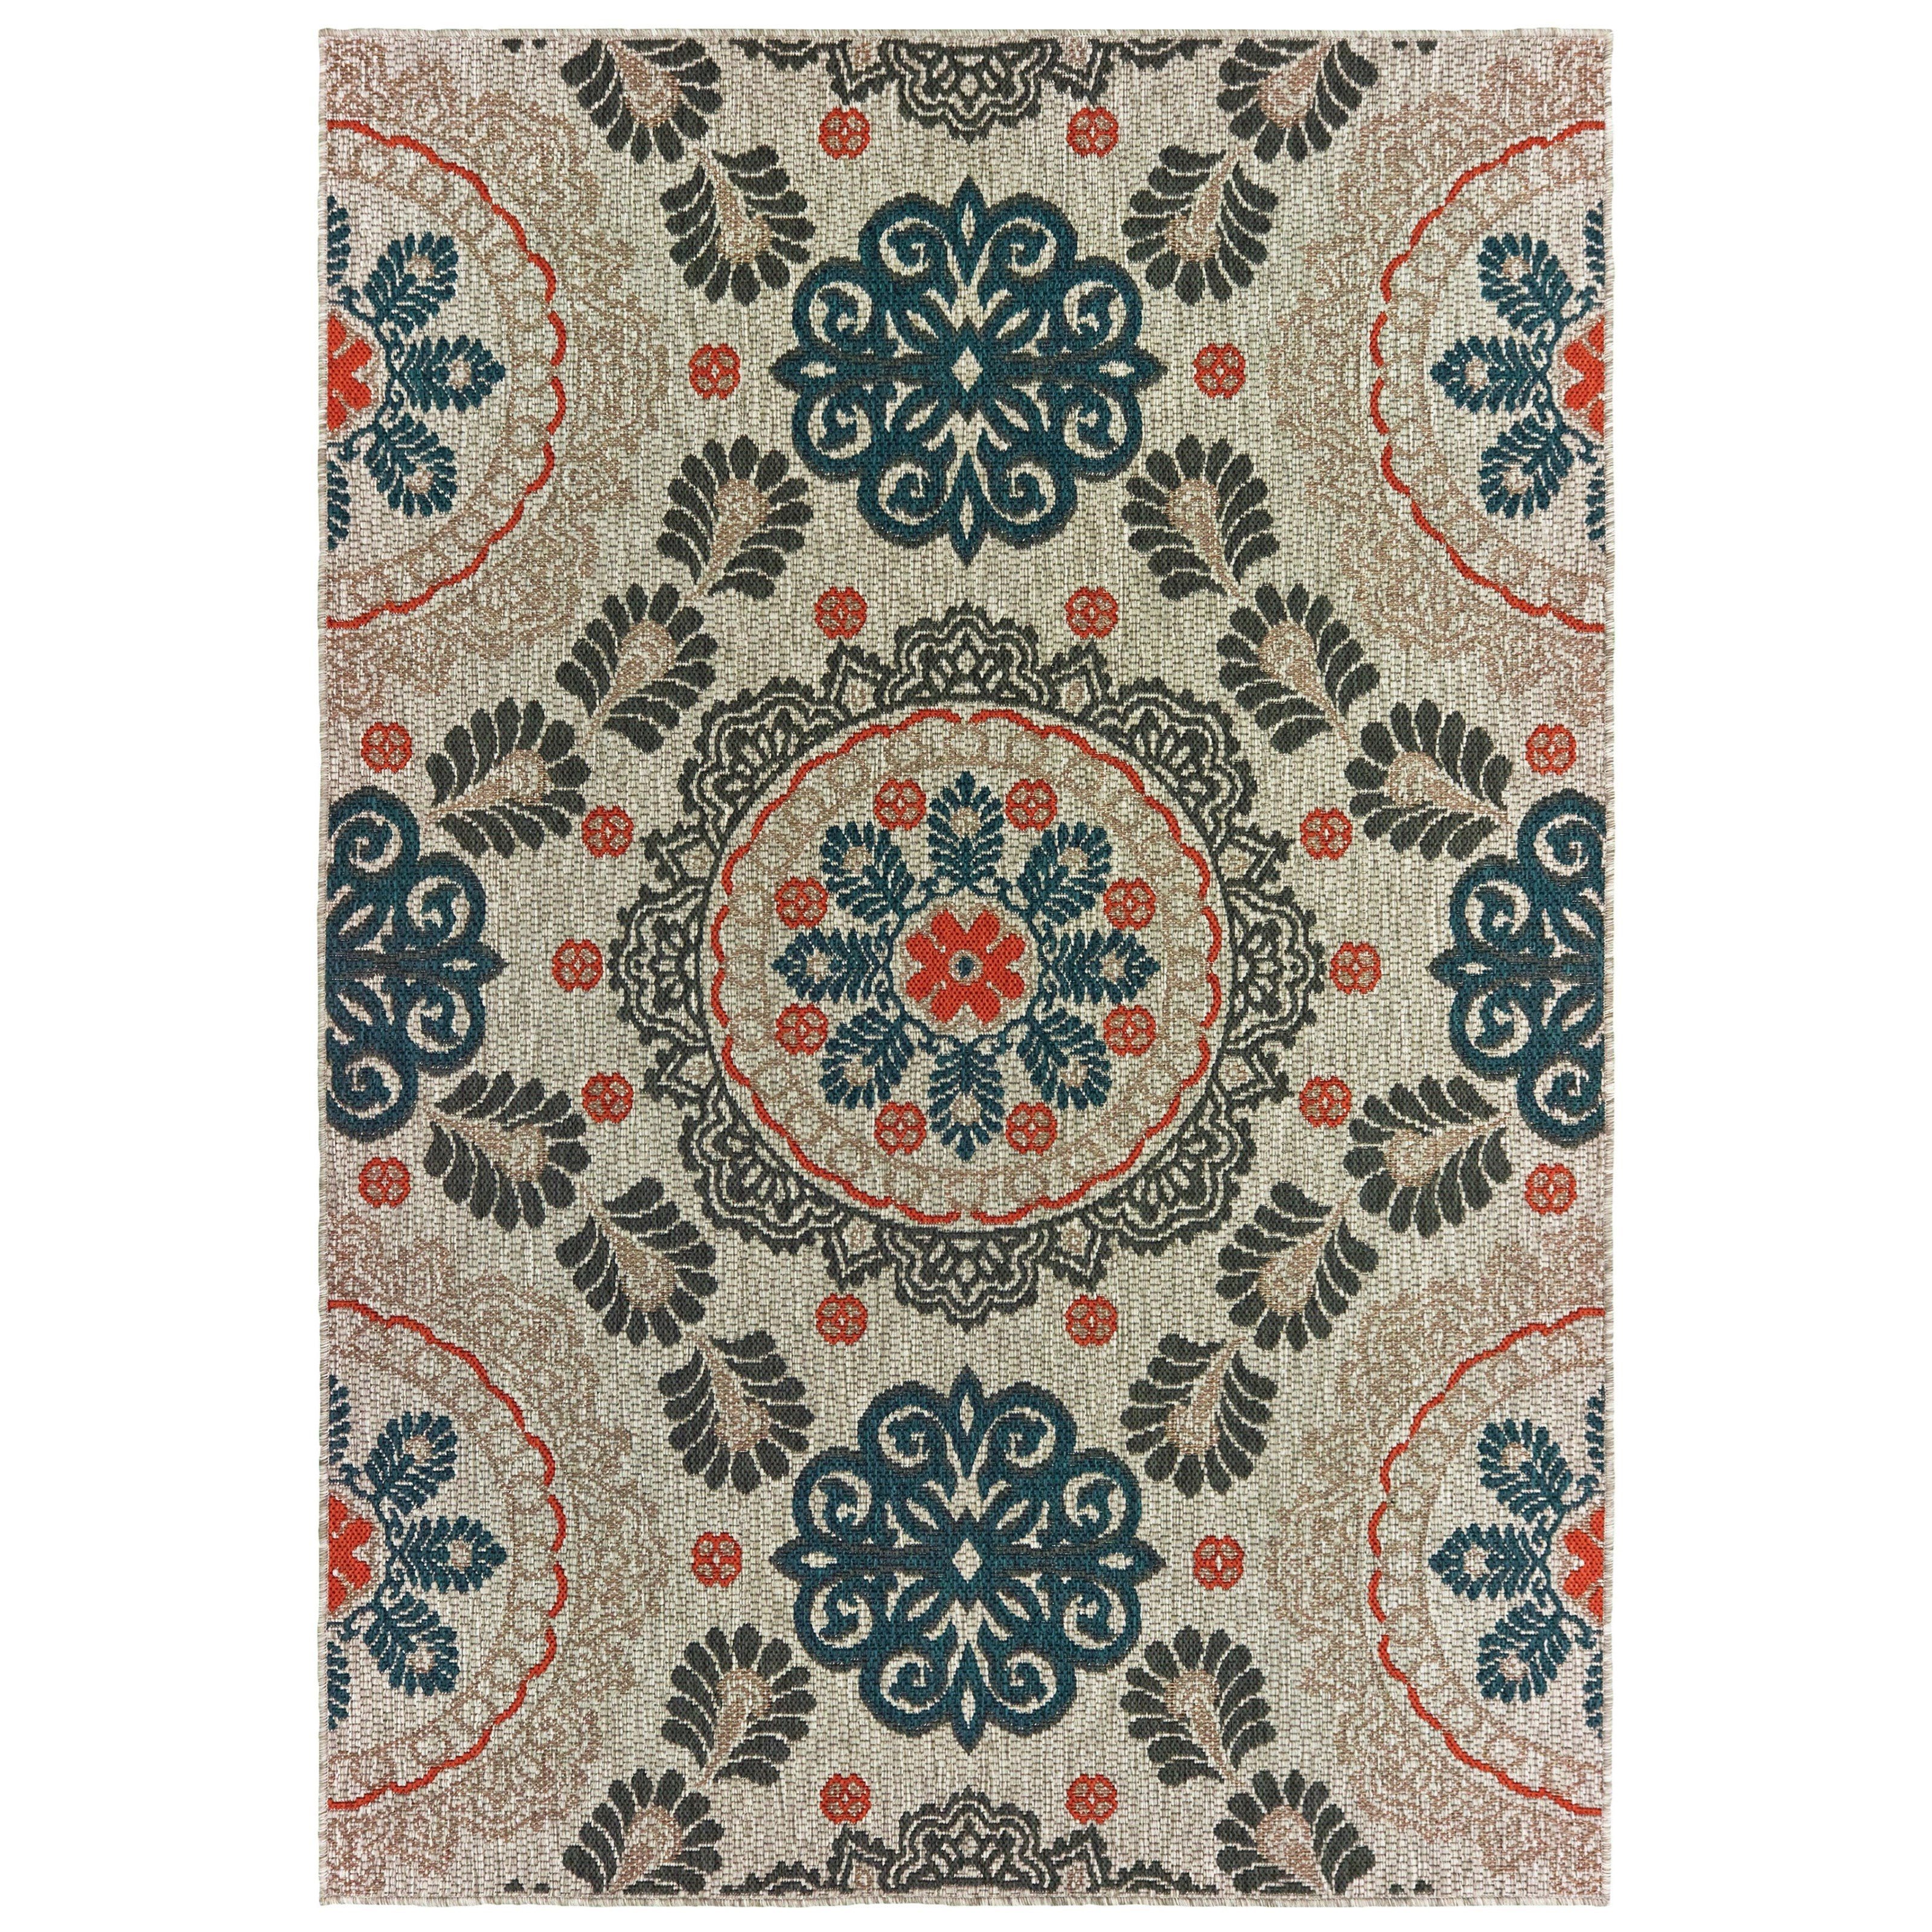 "Latitude 9'10"" X 12'10"" Rectangle Rug by Oriental Weavers at Furniture Superstore - Rochester, MN"